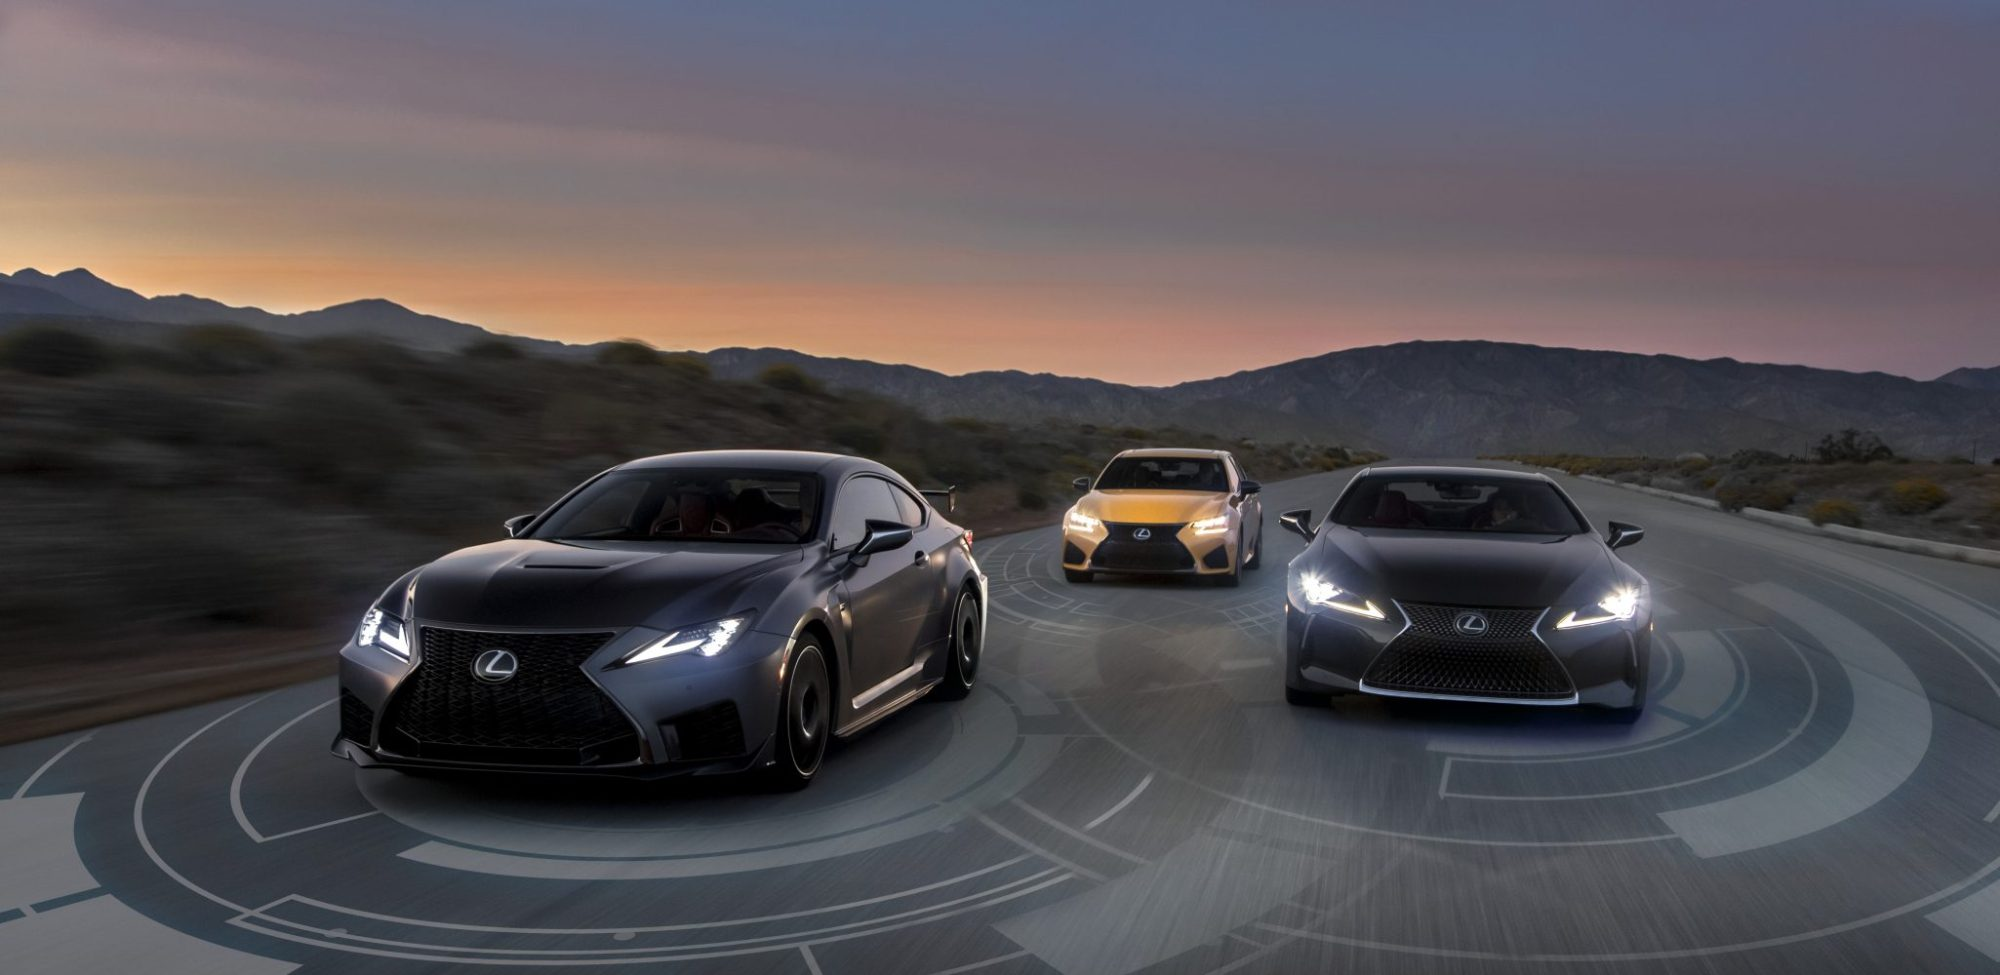 hight resolution of lexus moves one step closer to a world without crashes